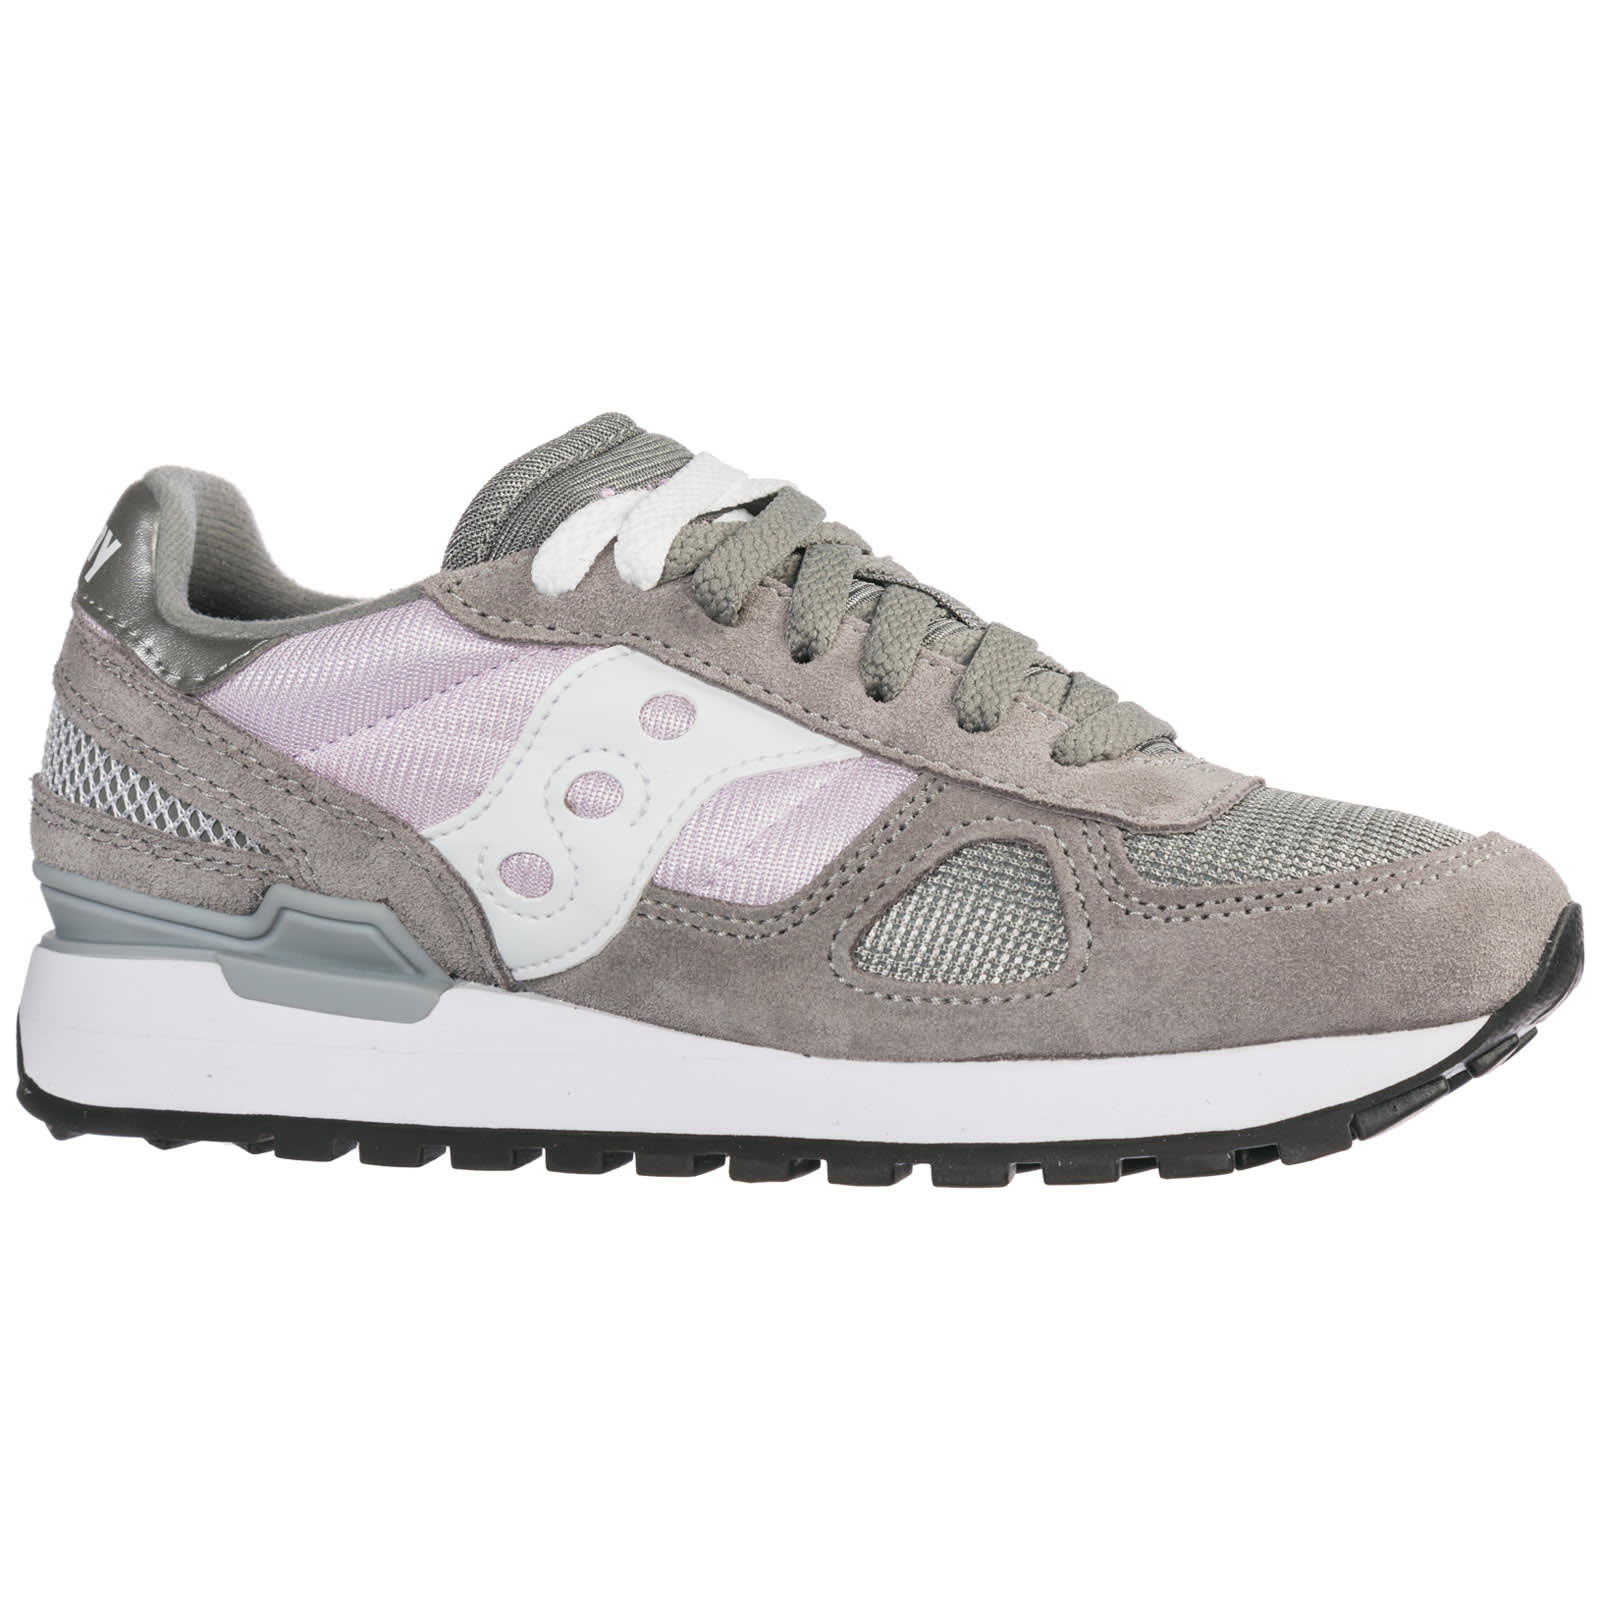 wholesale dealer 019cd a2d08 Saucony Shoes Suede Trainers Sneakers Shadow O